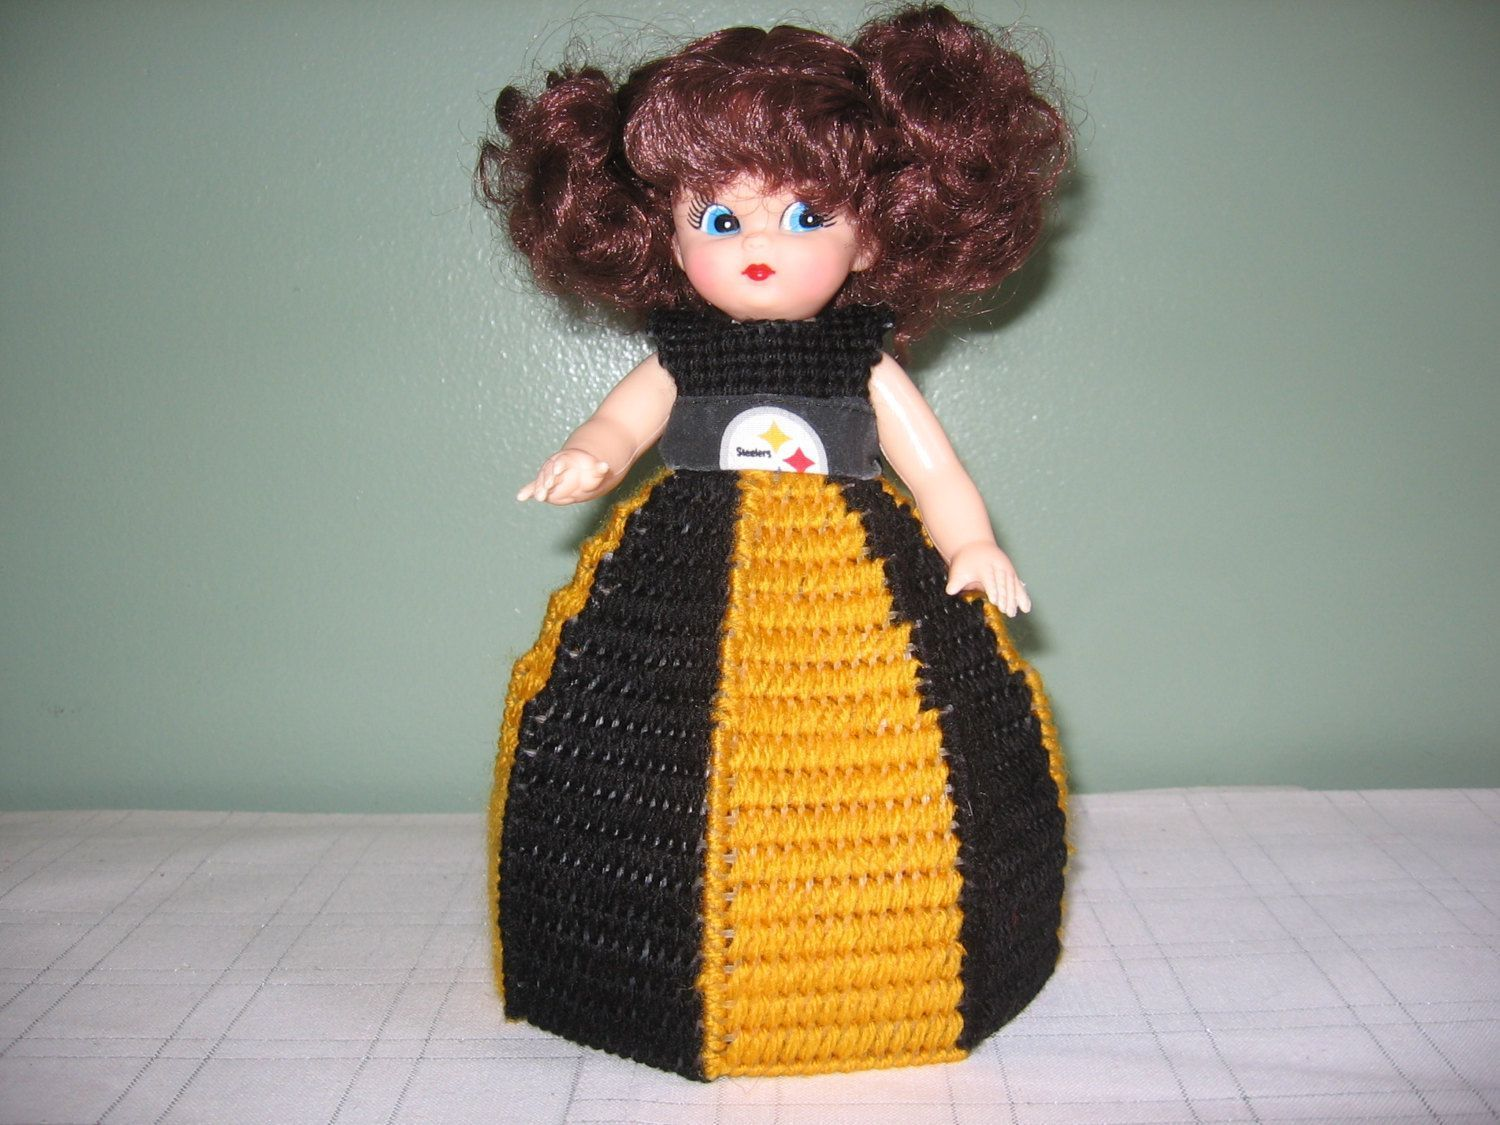 Pittsburgh Steeler Collectible Doll - great for a decoration or air freshner by CreationsbyAMJ on Etsy #airfreshnerdolls Pittsburgh Steeler Collectible Doll - great for a decoration or air freshner by CreationsbyAMJ on Etsy #airfreshnerdolls Pittsburgh Steeler Collectible Doll - great for a decoration or air freshner by CreationsbyAMJ on Etsy #airfreshnerdolls Pittsburgh Steeler Collectible Doll - great for a decoration or air freshner by CreationsbyAMJ on Etsy #airfreshnerdolls